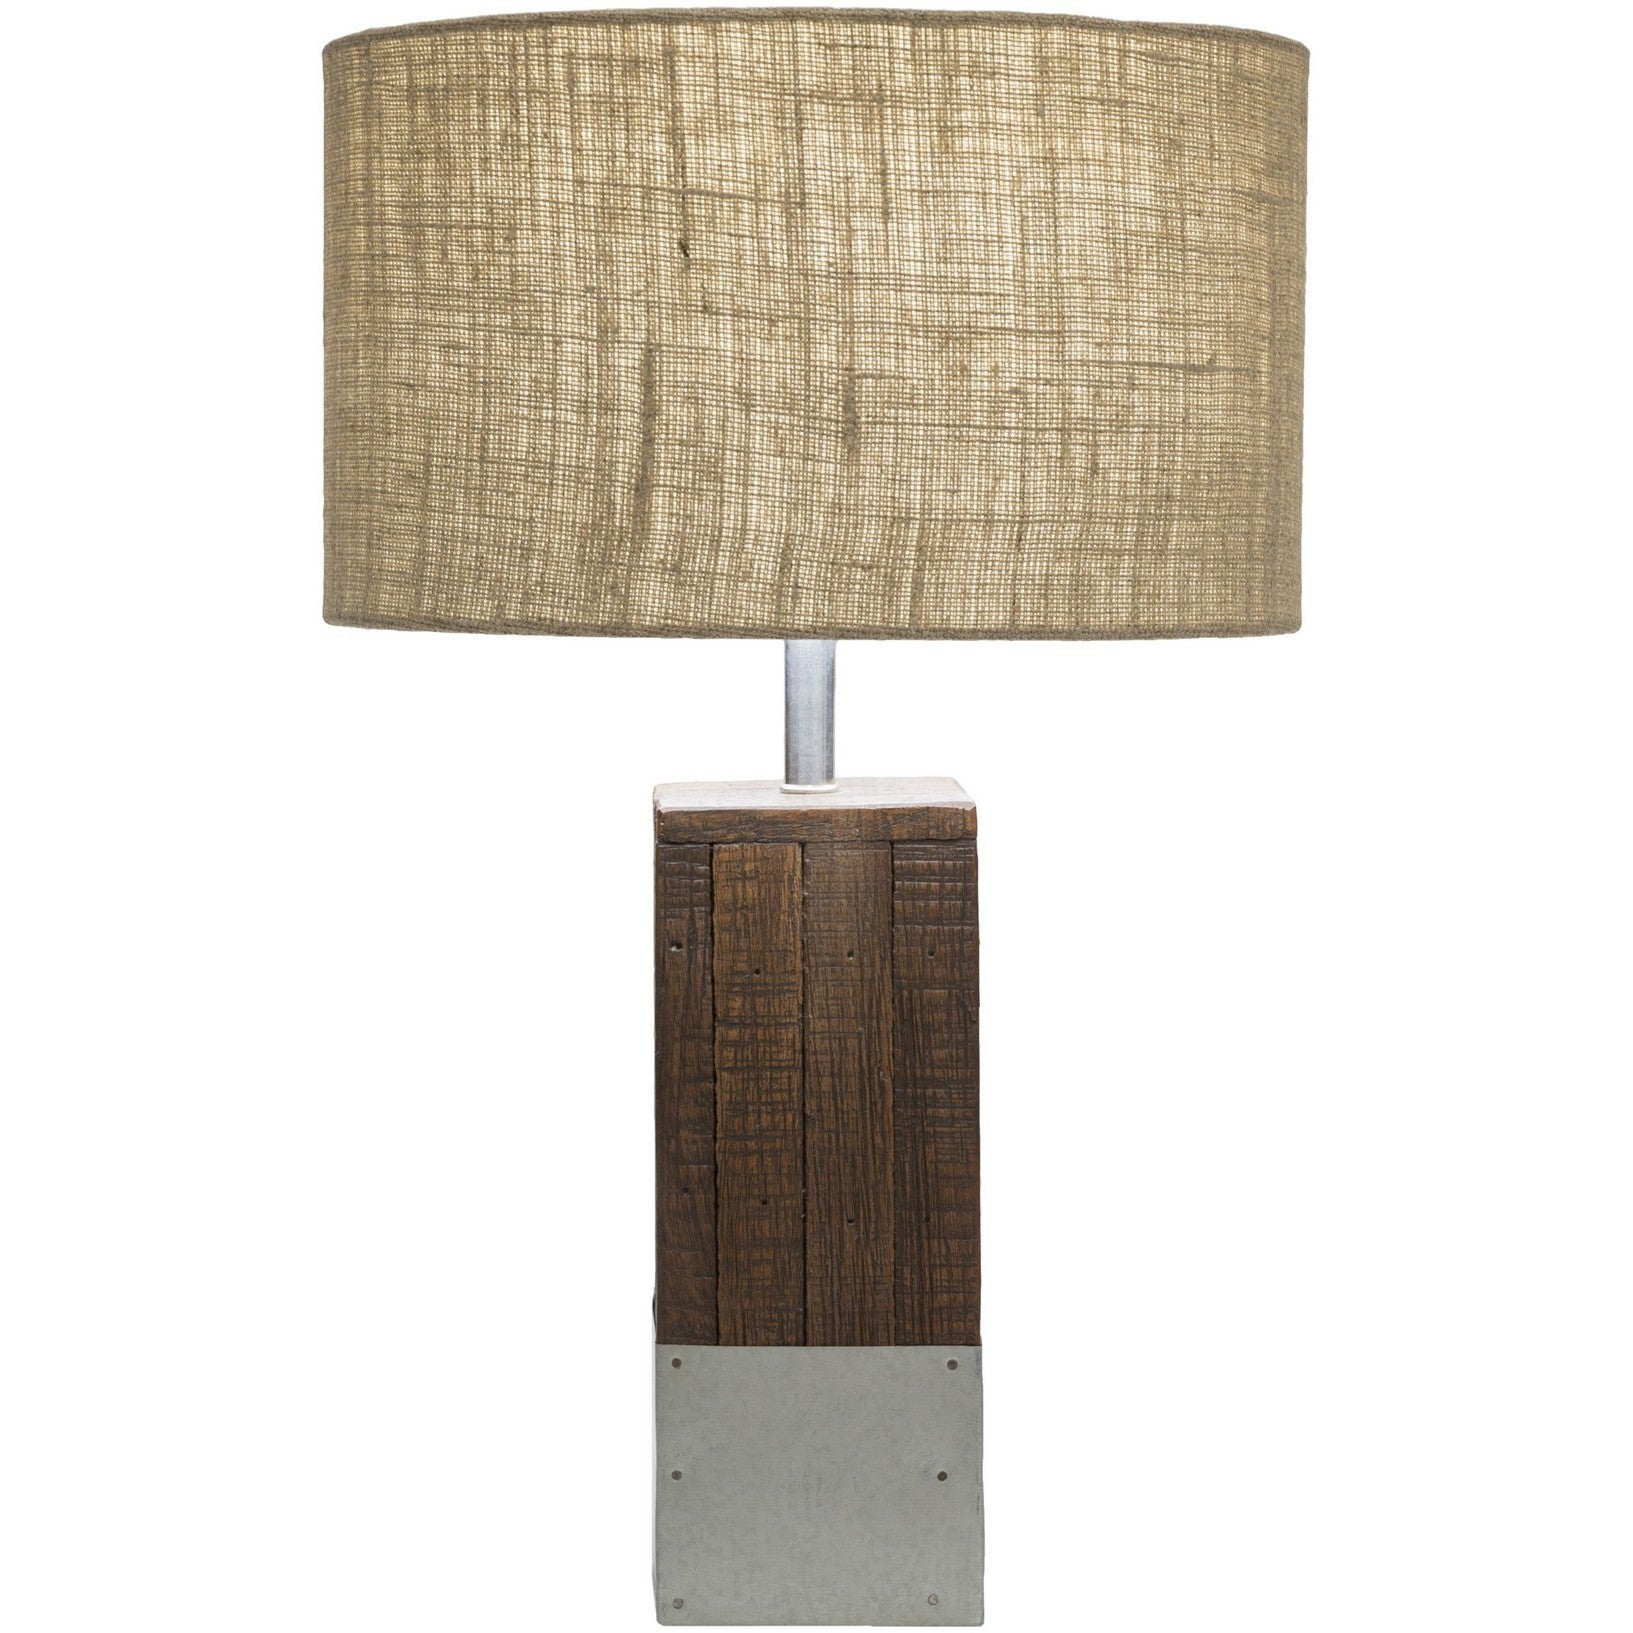 Anger natural finish wood base table lamp ebay anger natural finish wood base table lamp aloadofball Image collections